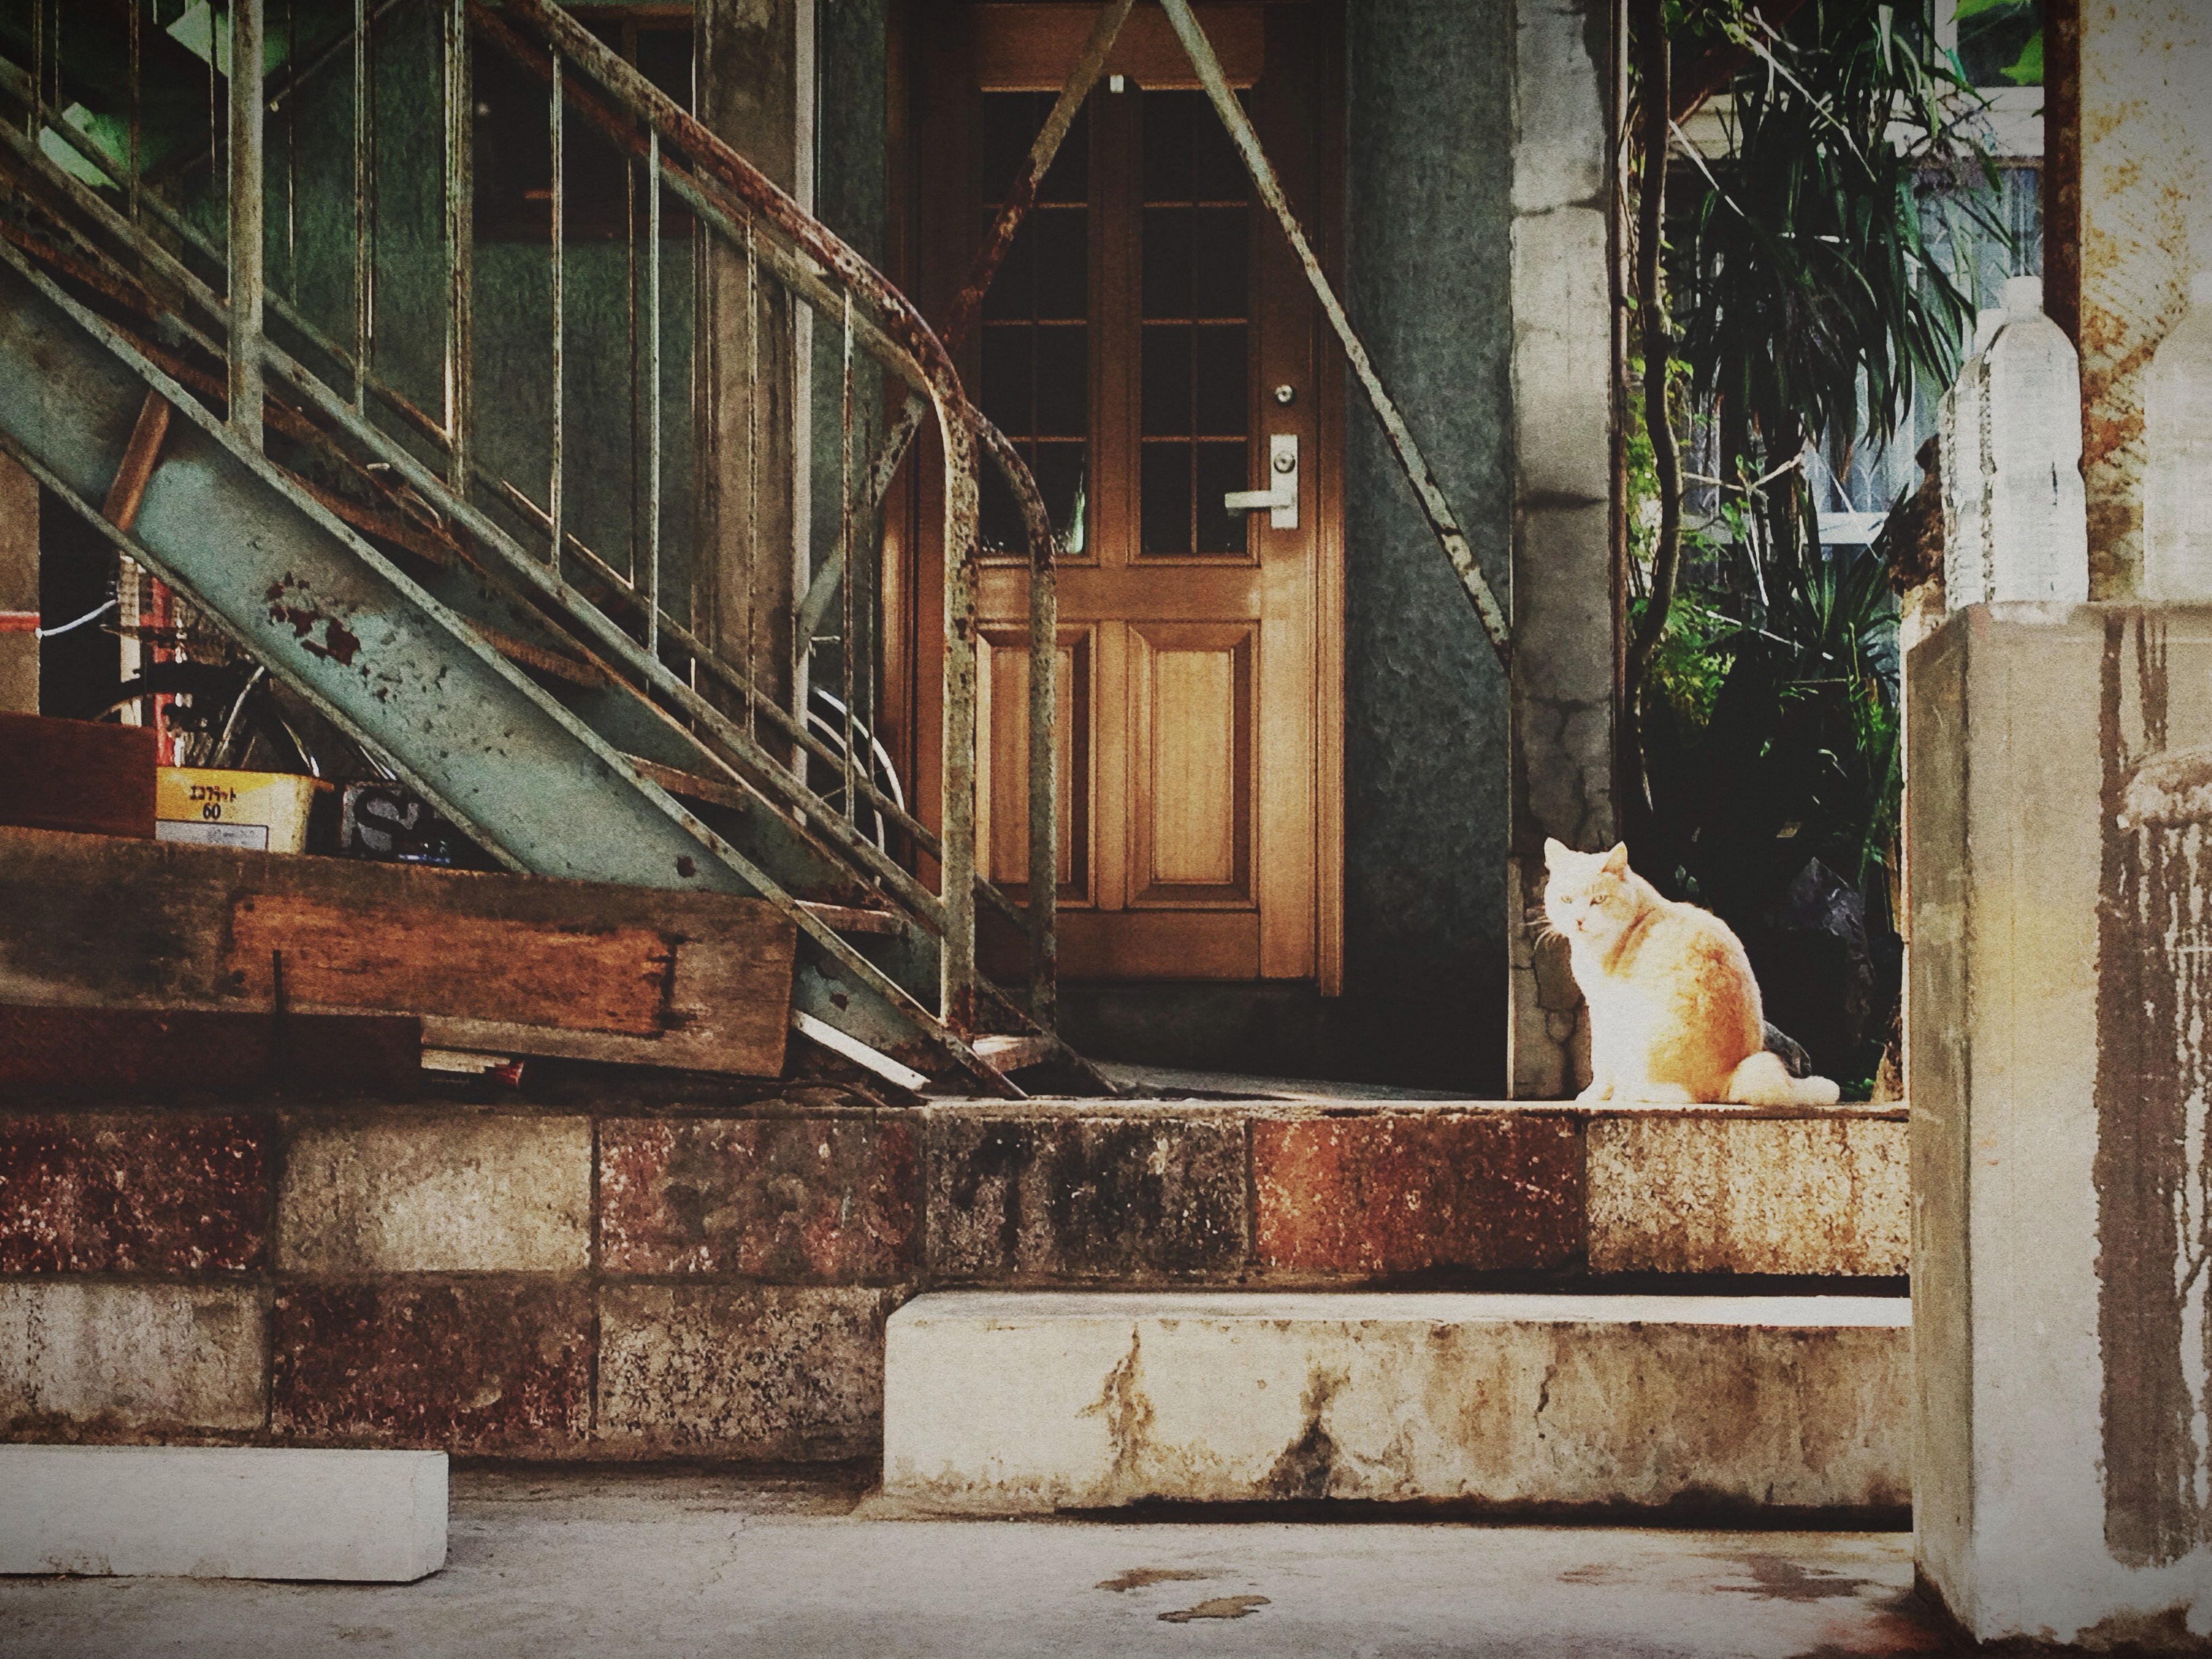 domestic animals, animal themes, mammal, pets, one animal, building exterior, built structure, domestic cat, architecture, cat, house, dog, outdoors, metal, railing, day, no people, feline, wall - building feature, steps